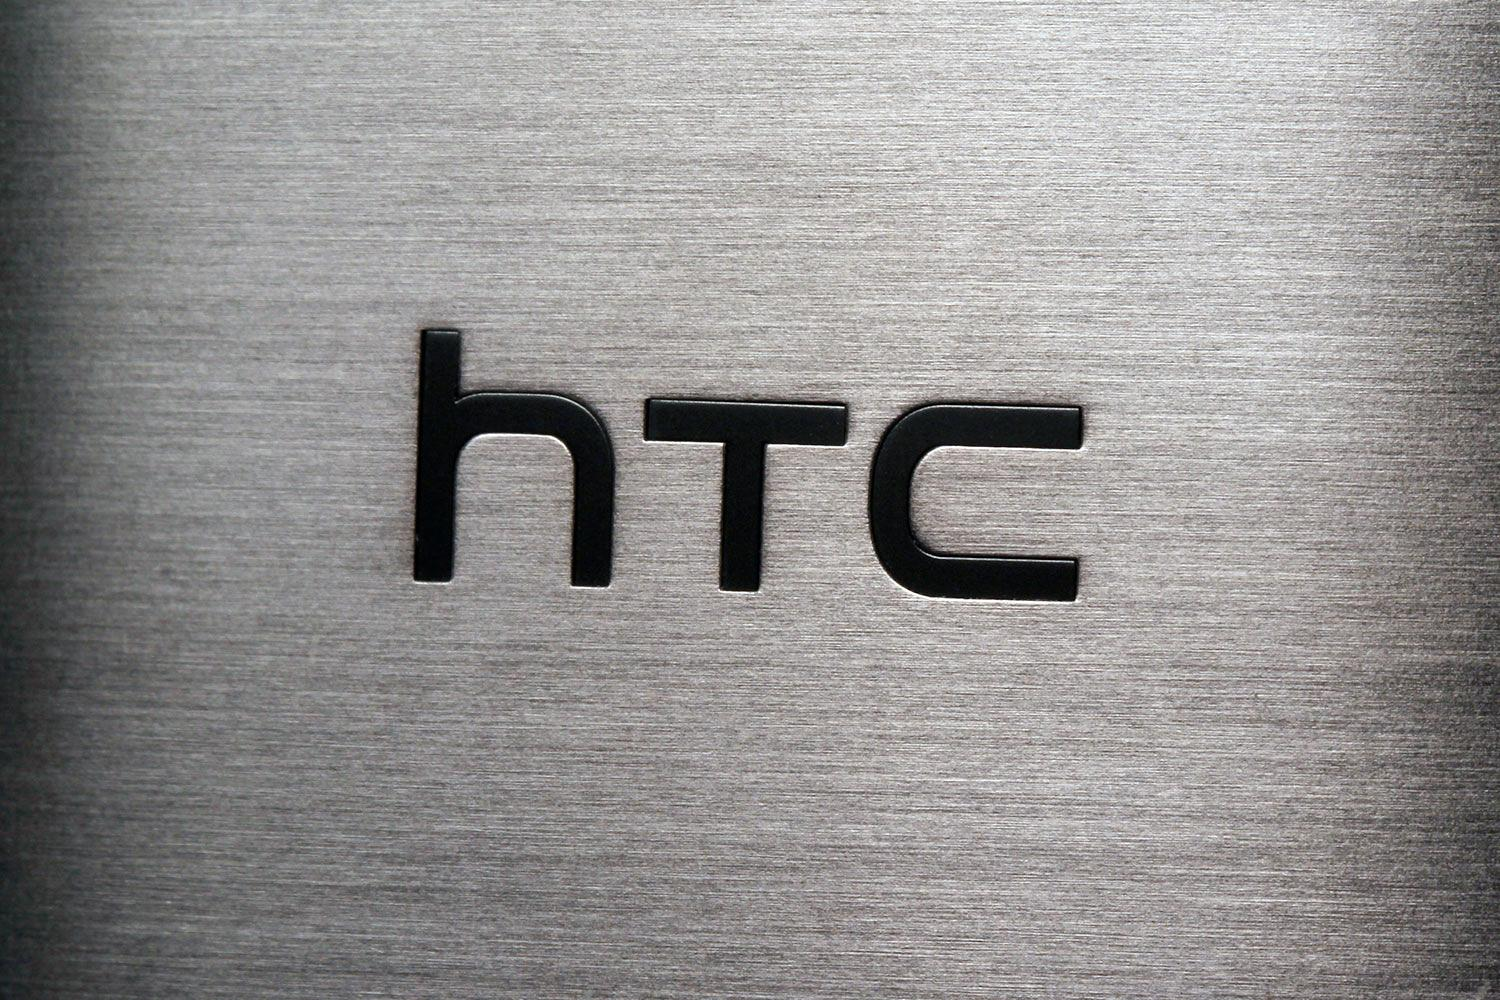 Mercedes Car Wallpaper For Mobile Htc S Serious About Marketing Again Hires Former Samsung